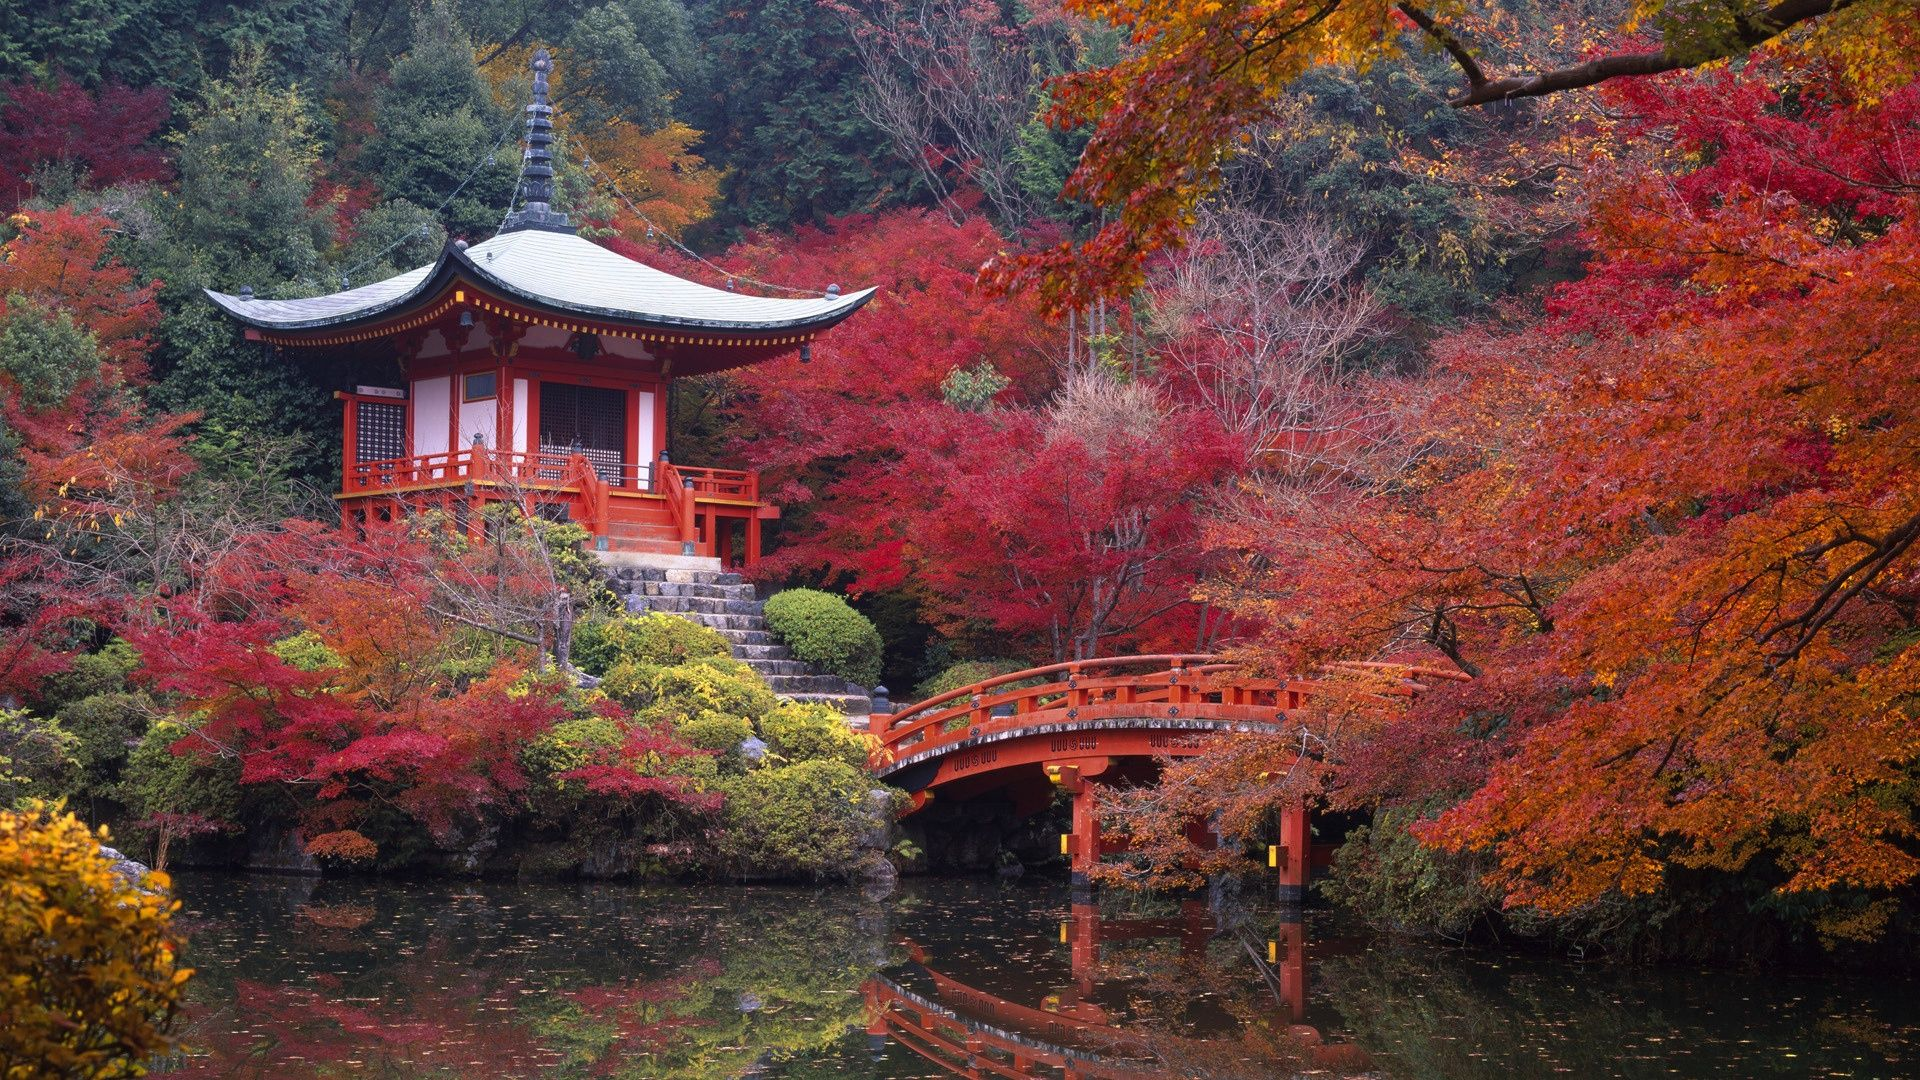 Colorful Japan Landscape Wallpaper PC Wallpaper 1920x1080